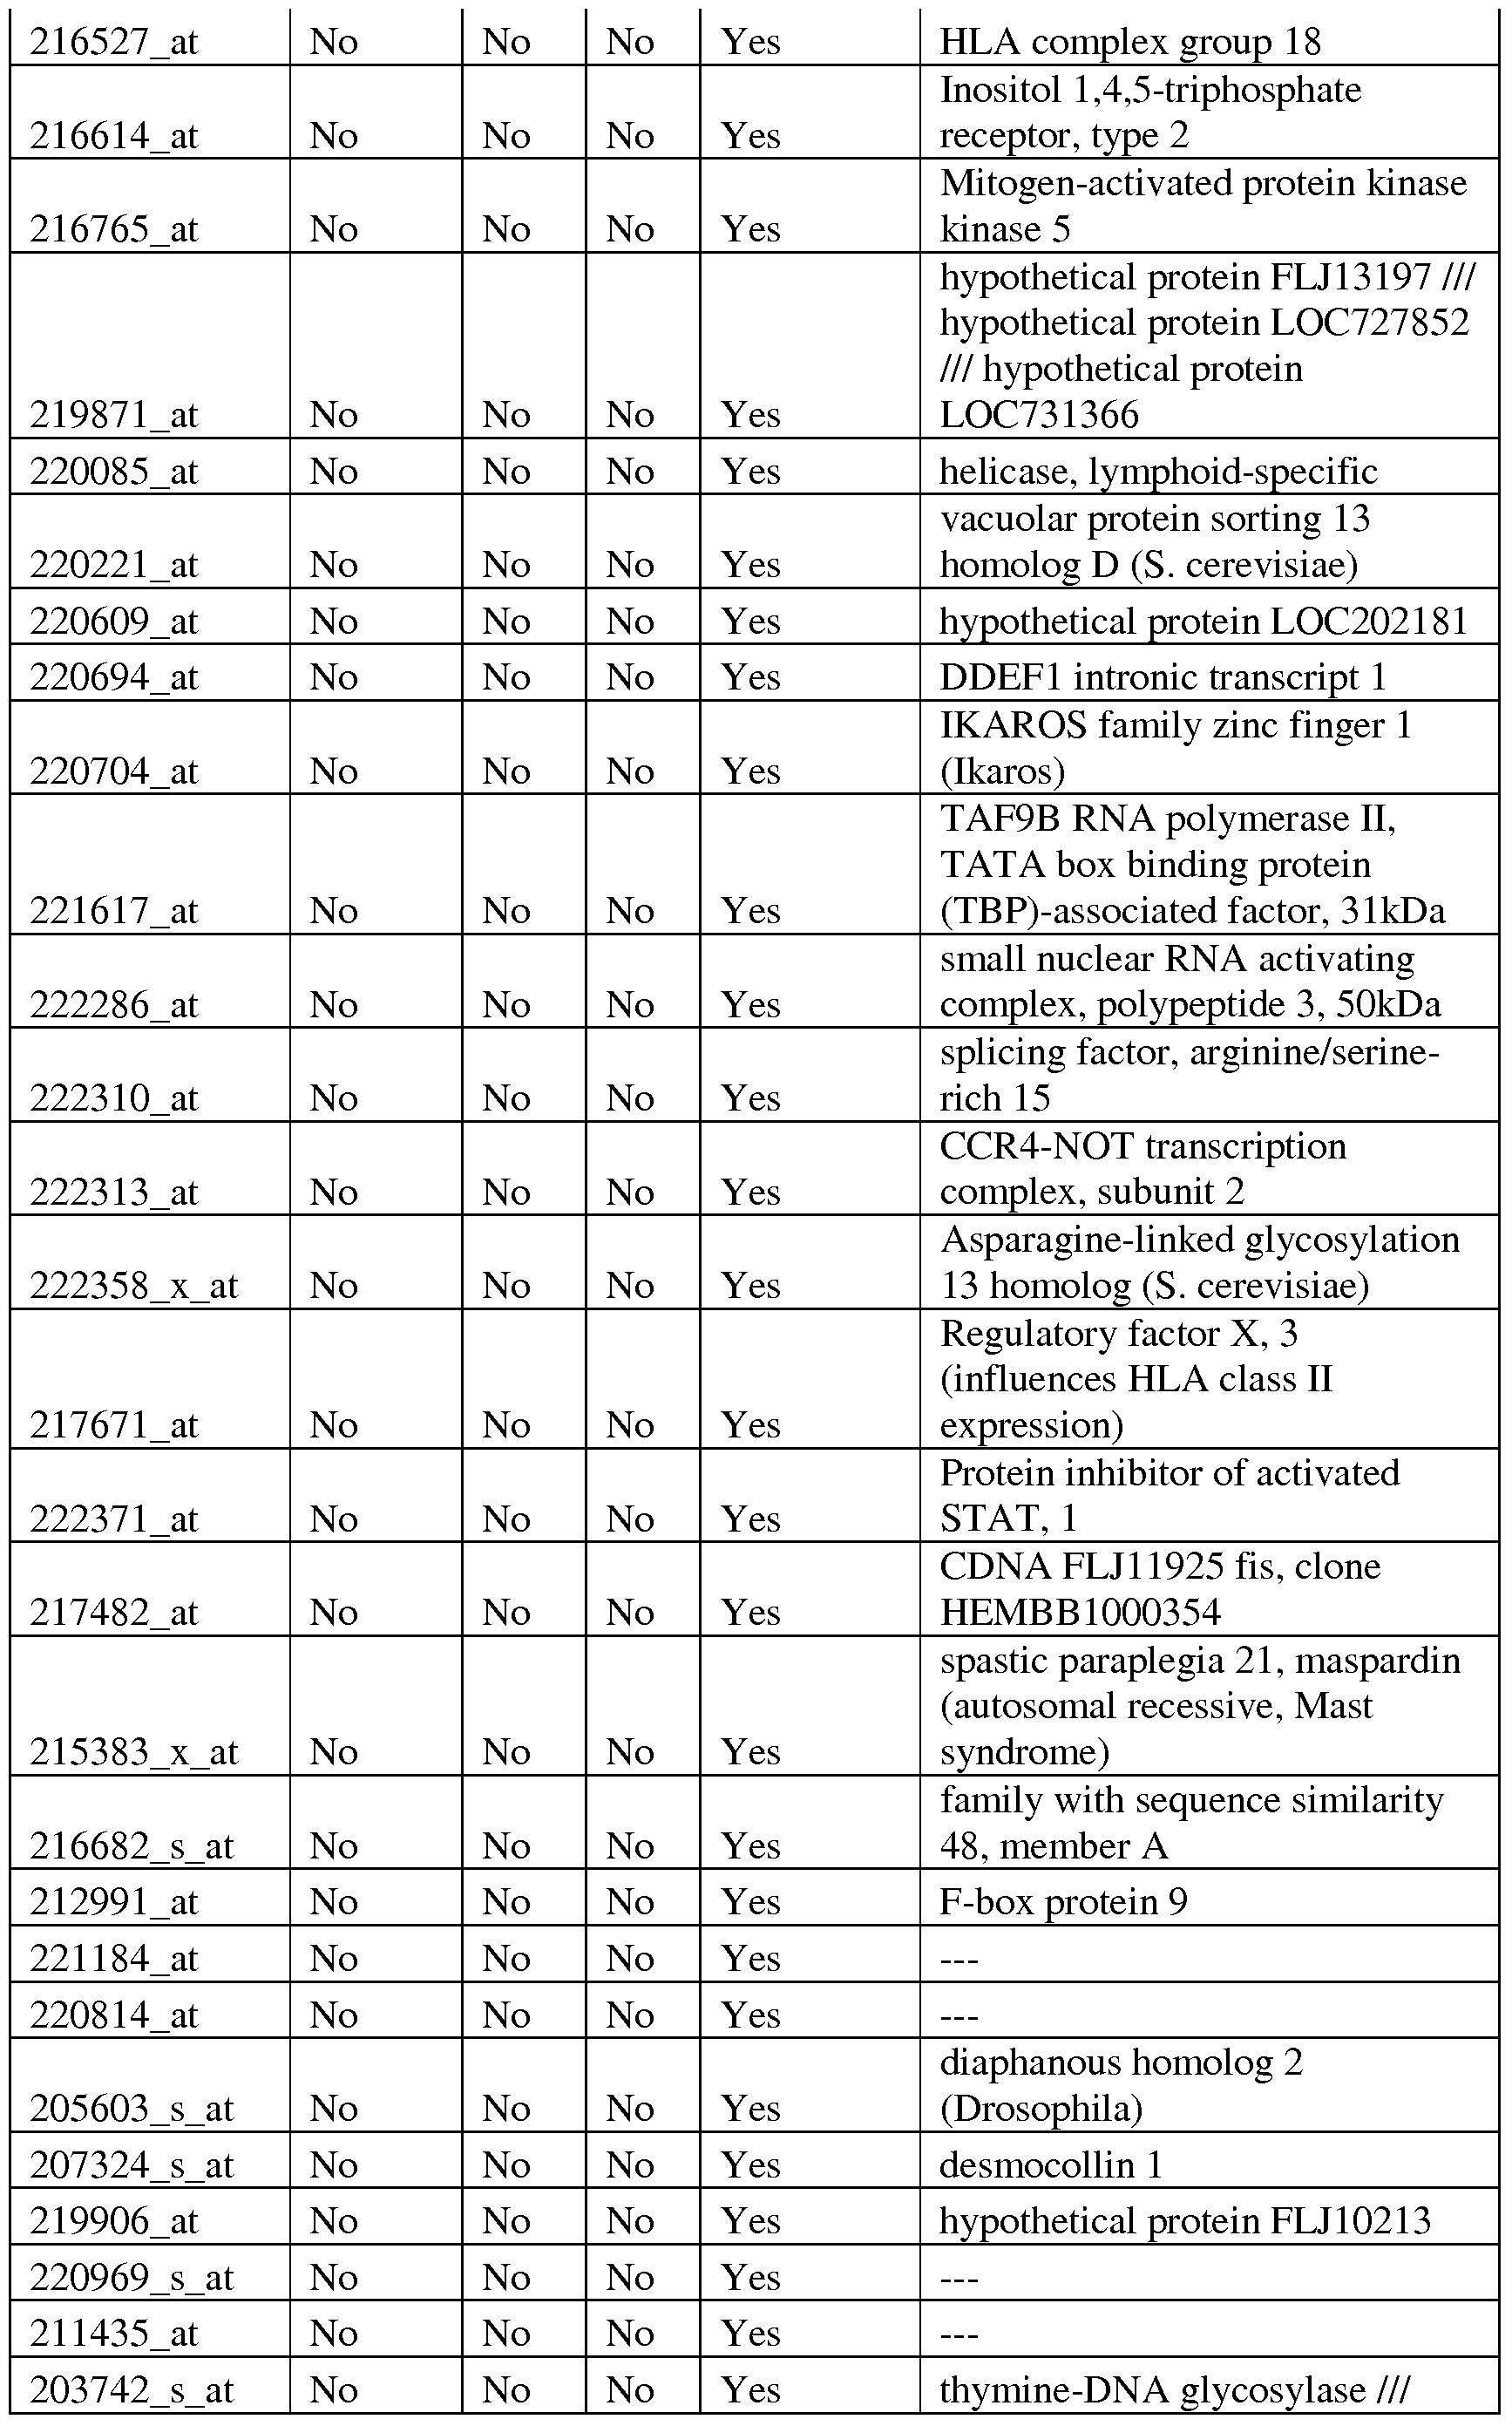 WO A2 Differential expression of molecules associated